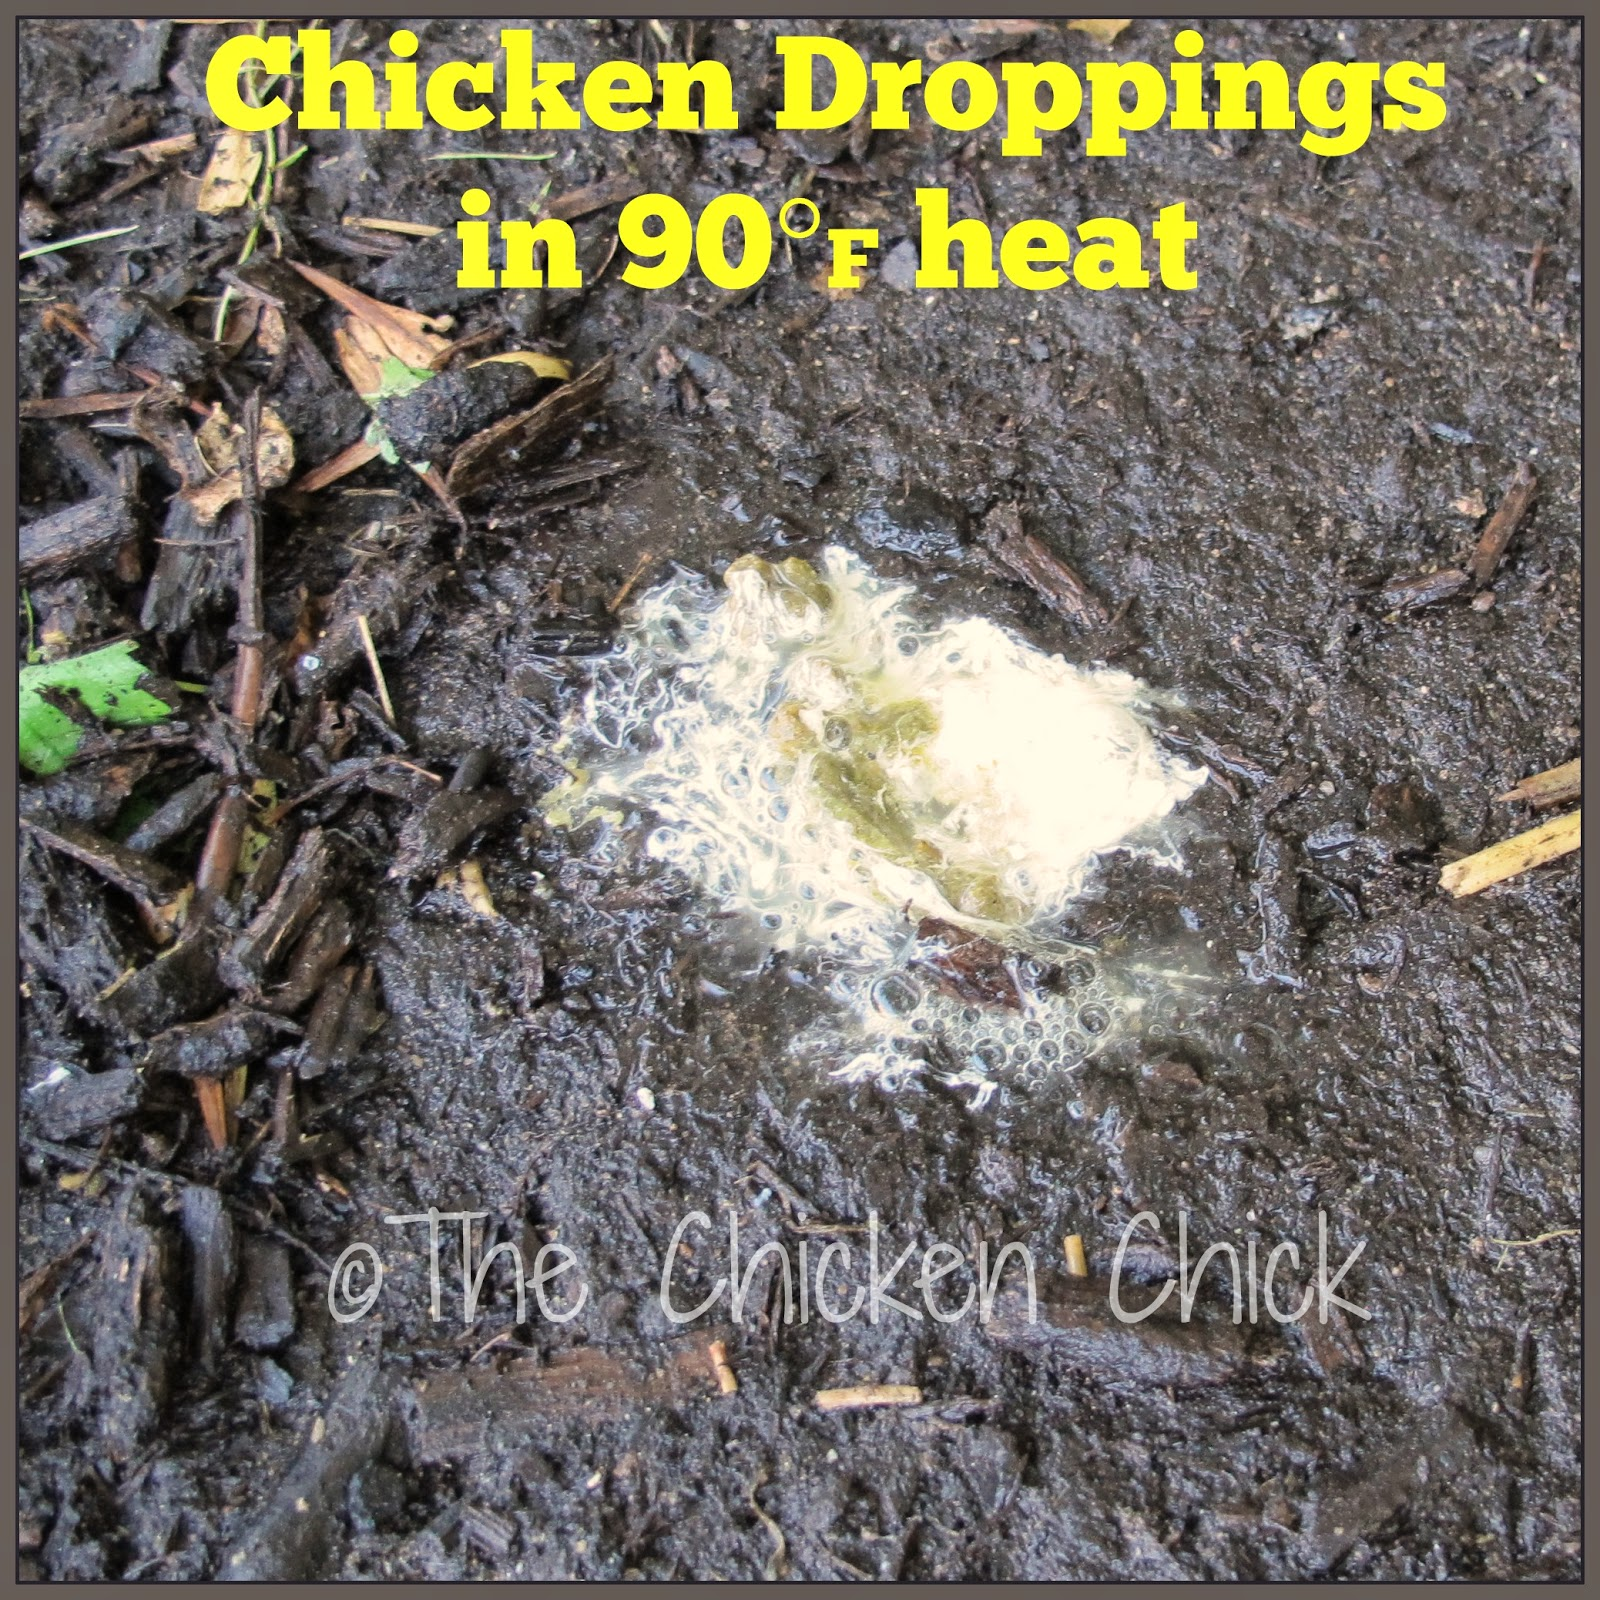 Due to increased water intake on hot days, chickens' droppings can appear loose, watery or runny, which is completely normal.